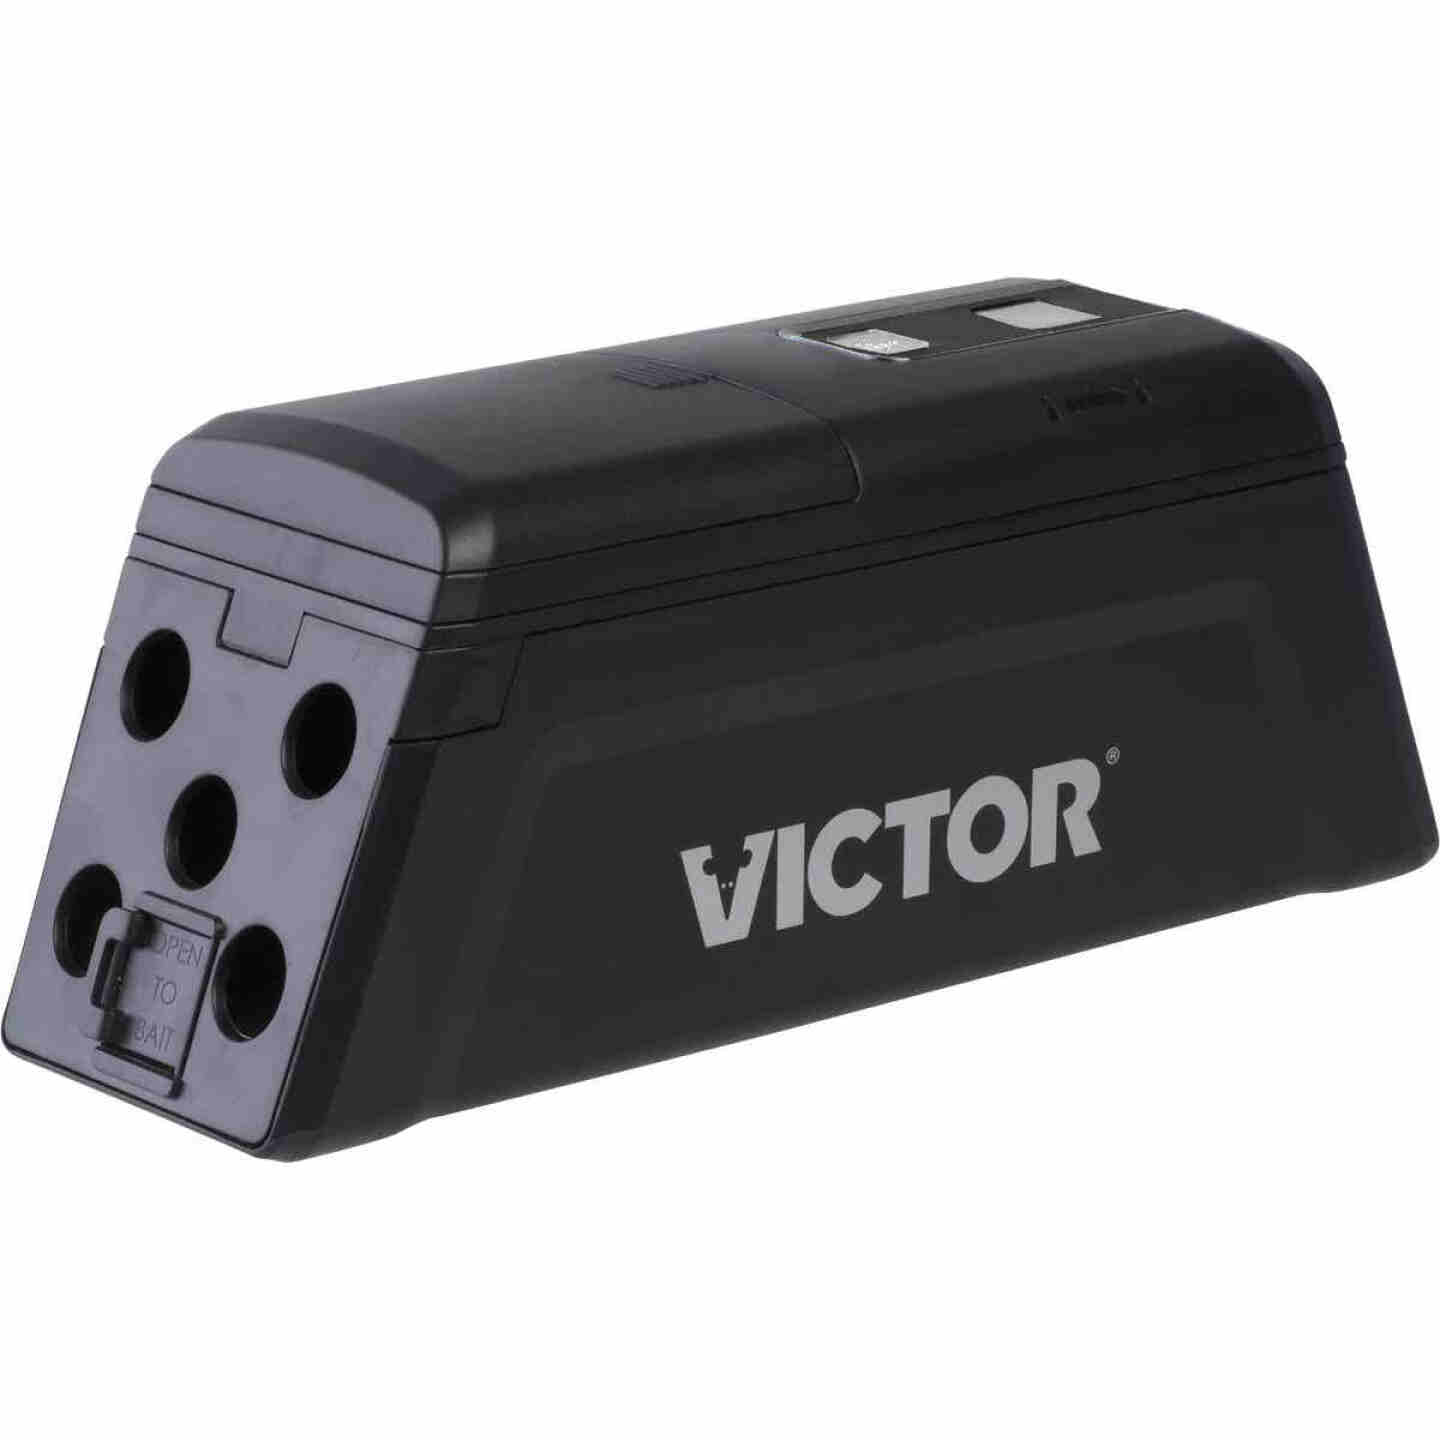 Victor Smart-Kill Battery Operated Electronic Rat Trap Image 1